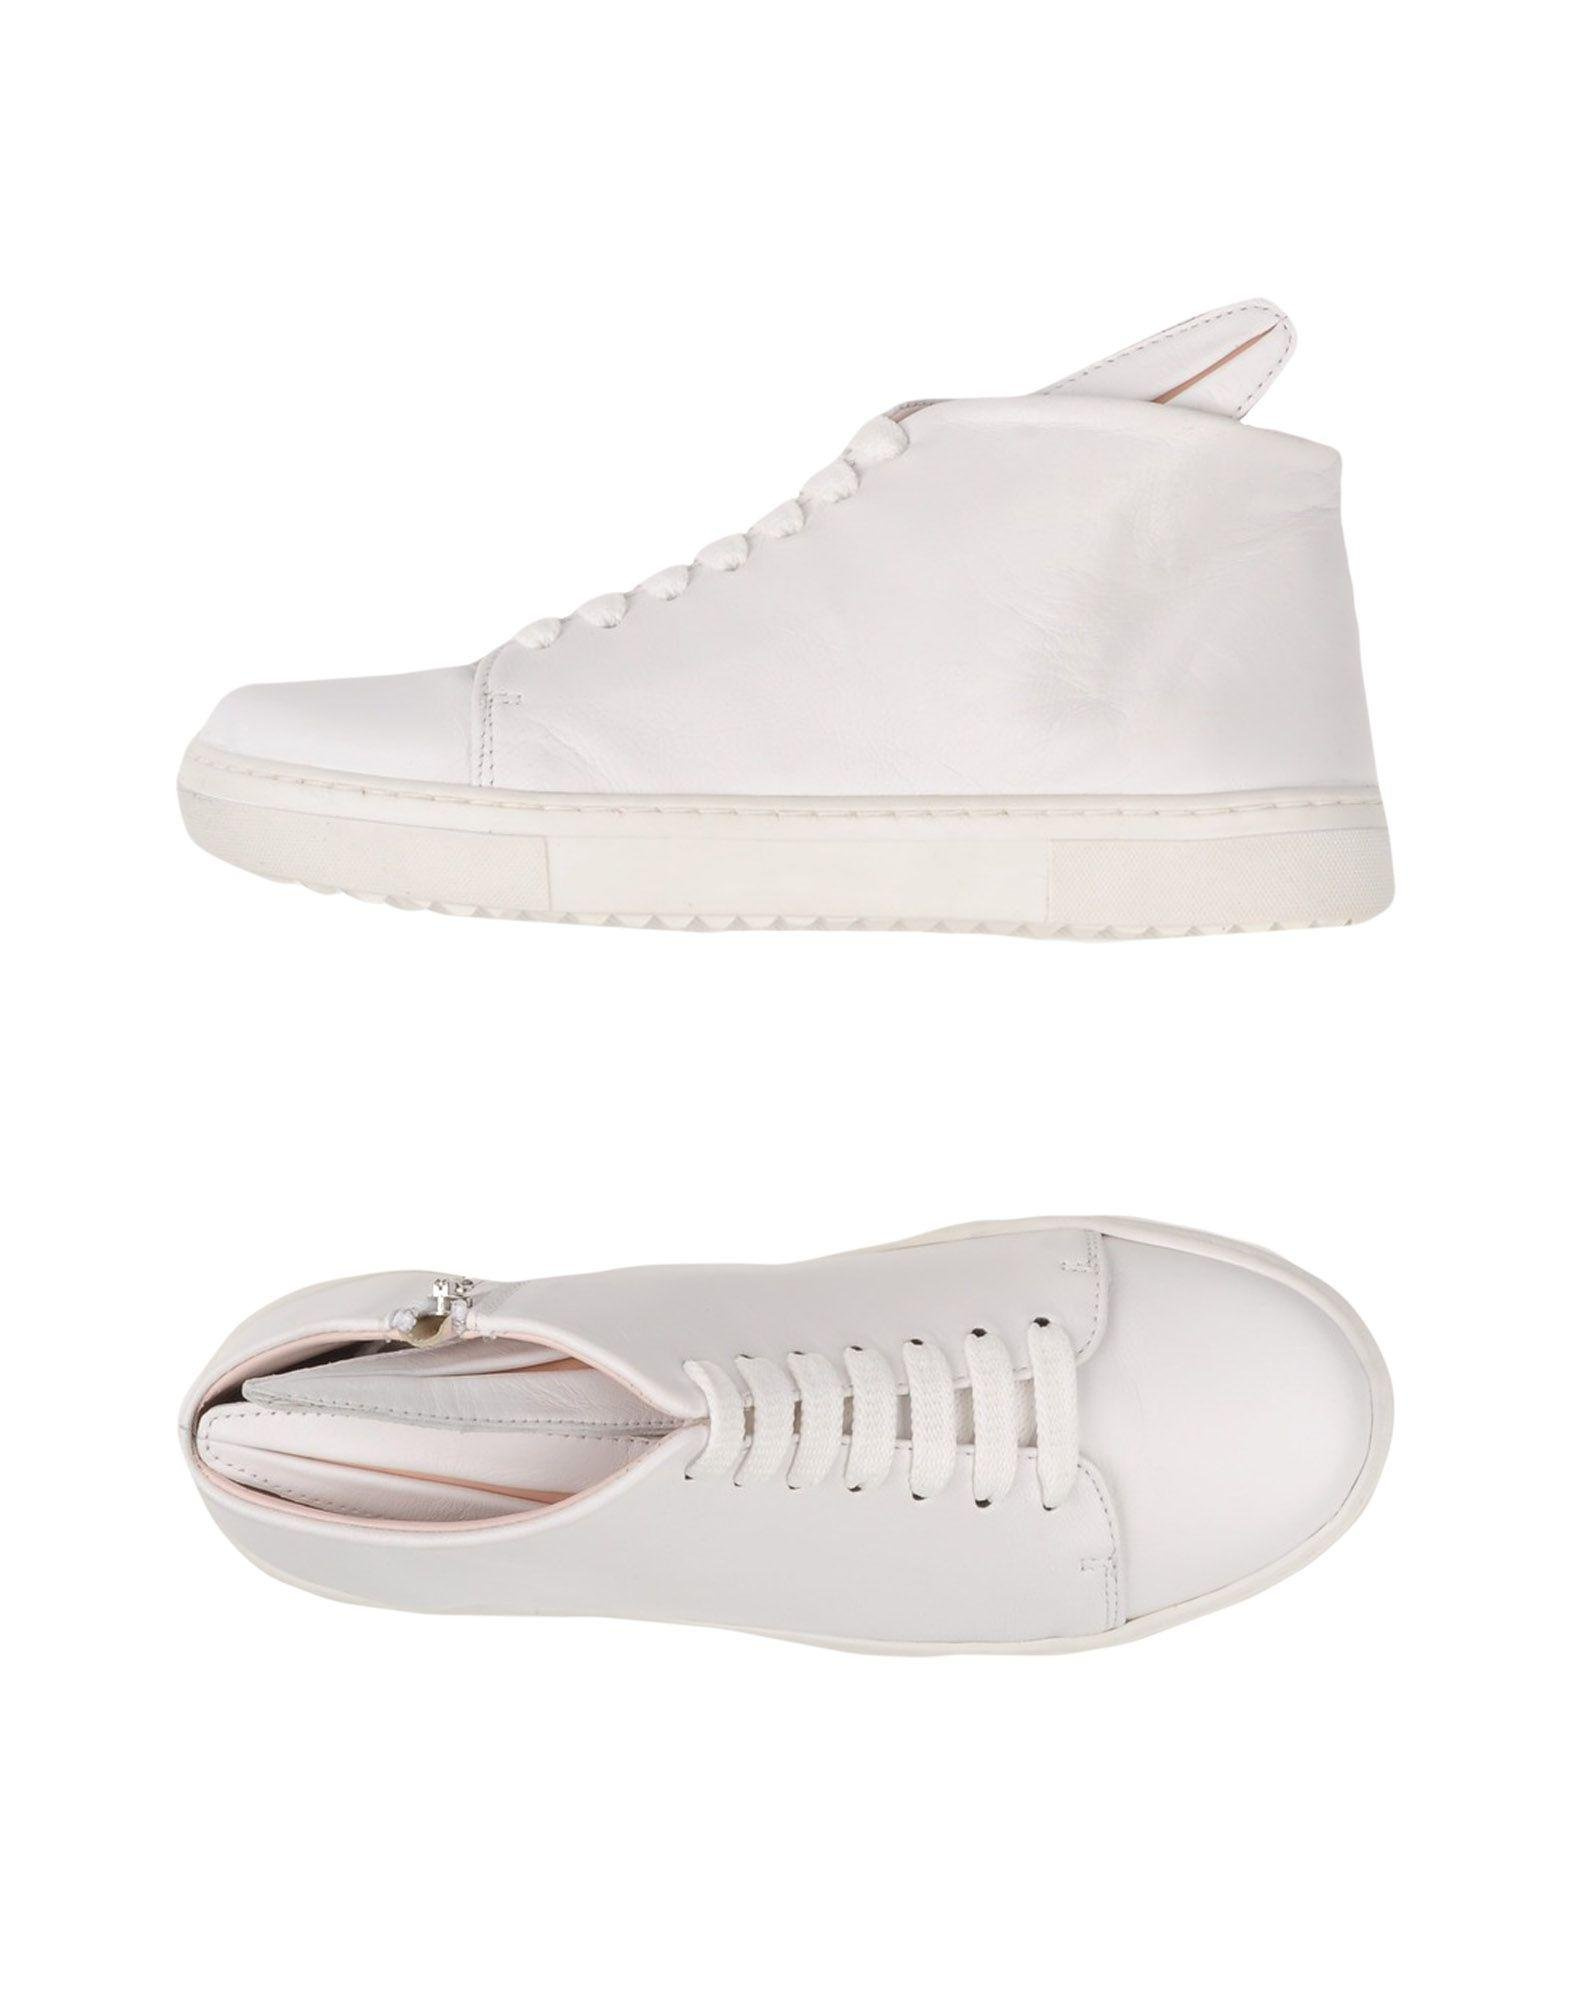 LOW TOP SNEAKER WITH BUNNY EARS - FOOTWEAR - Low-tops & sneakers Minna Parikka WXQFJ